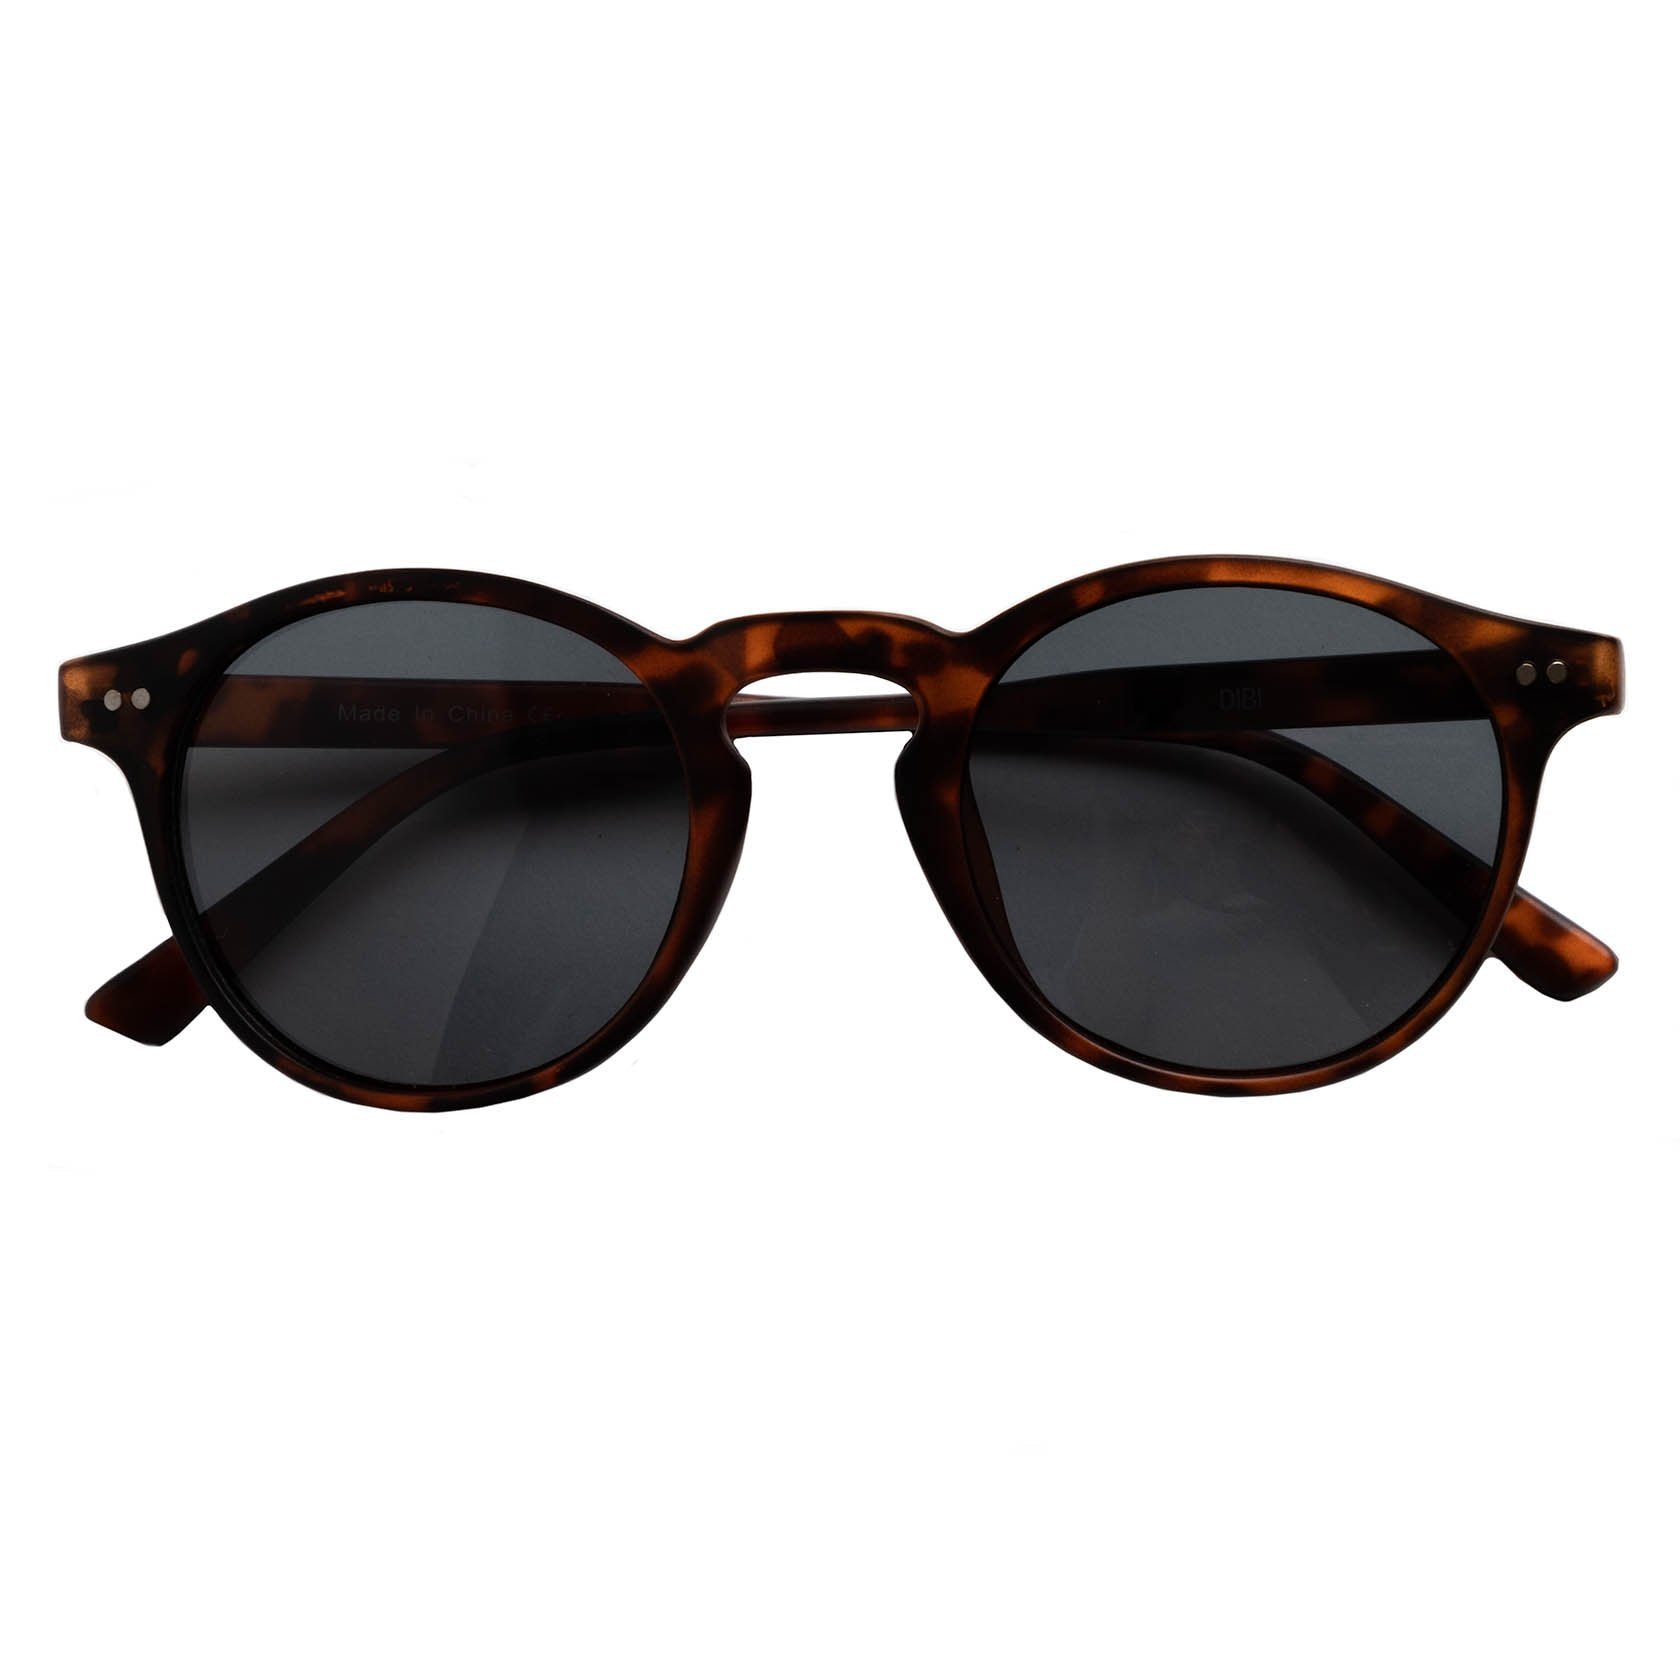 4ac91b1f42b82 Accessories - Dark Brown Tortoise Sunglasses